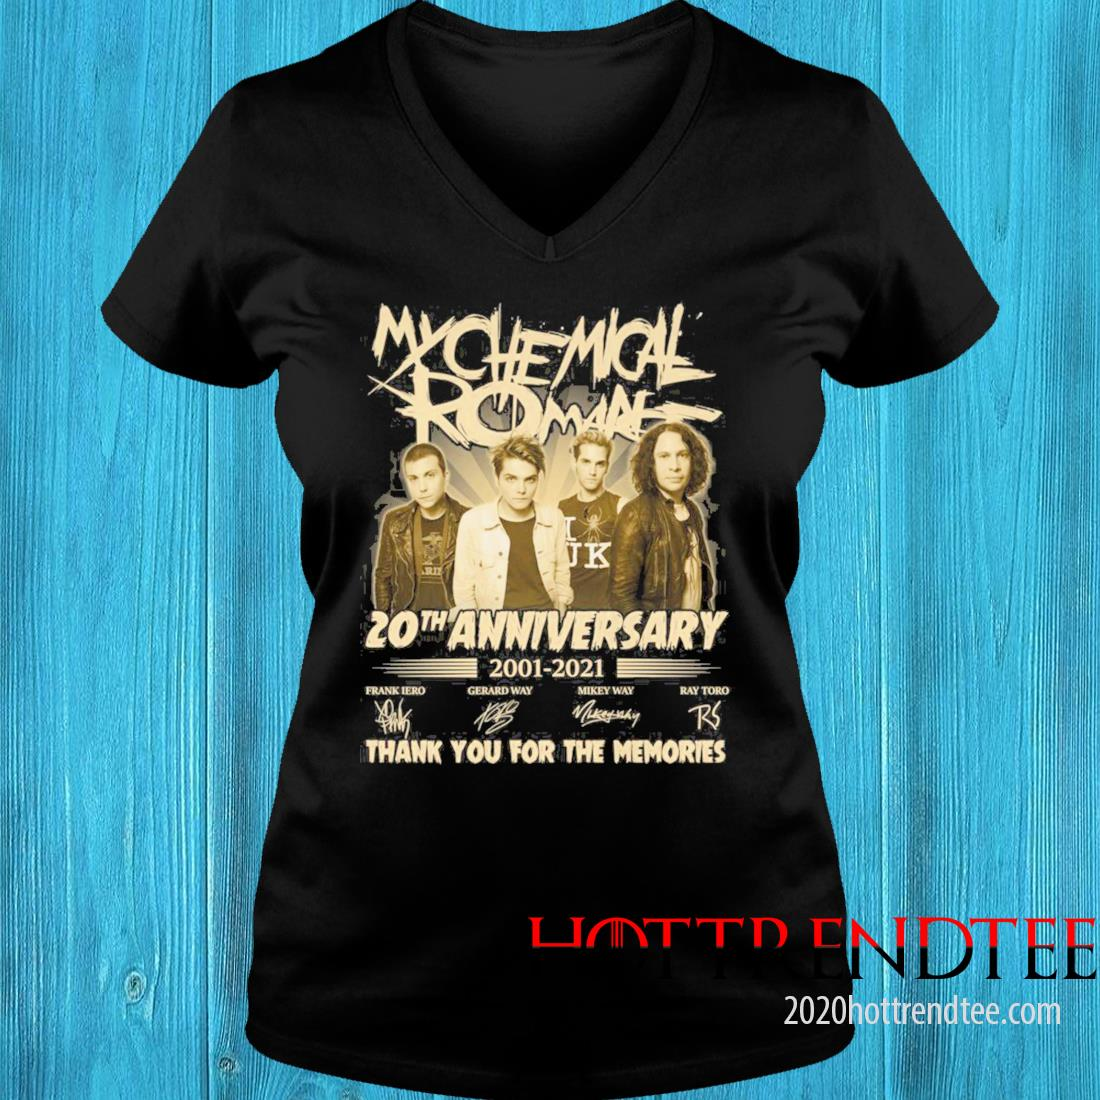 My Chemical Romance 20th Anniversary 2001 2021 Signatures Thank You For The Memories Shirt v-neck tee